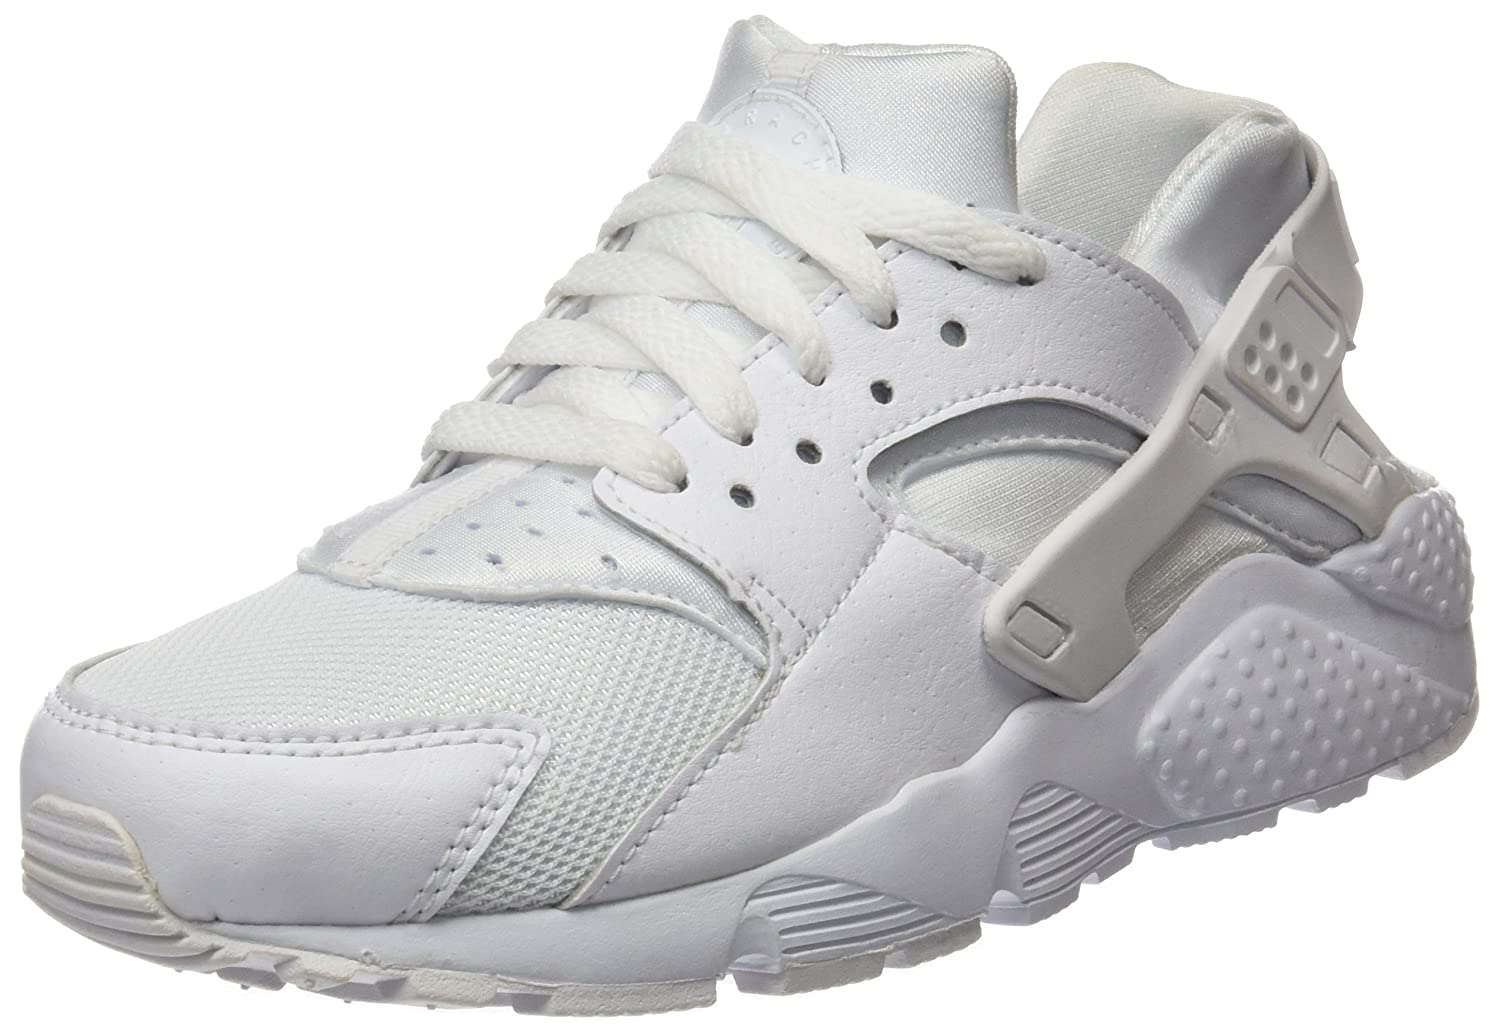 separation shoes 71885 9f720 Nike Huarache Run Gs, Boys  Low Trainers